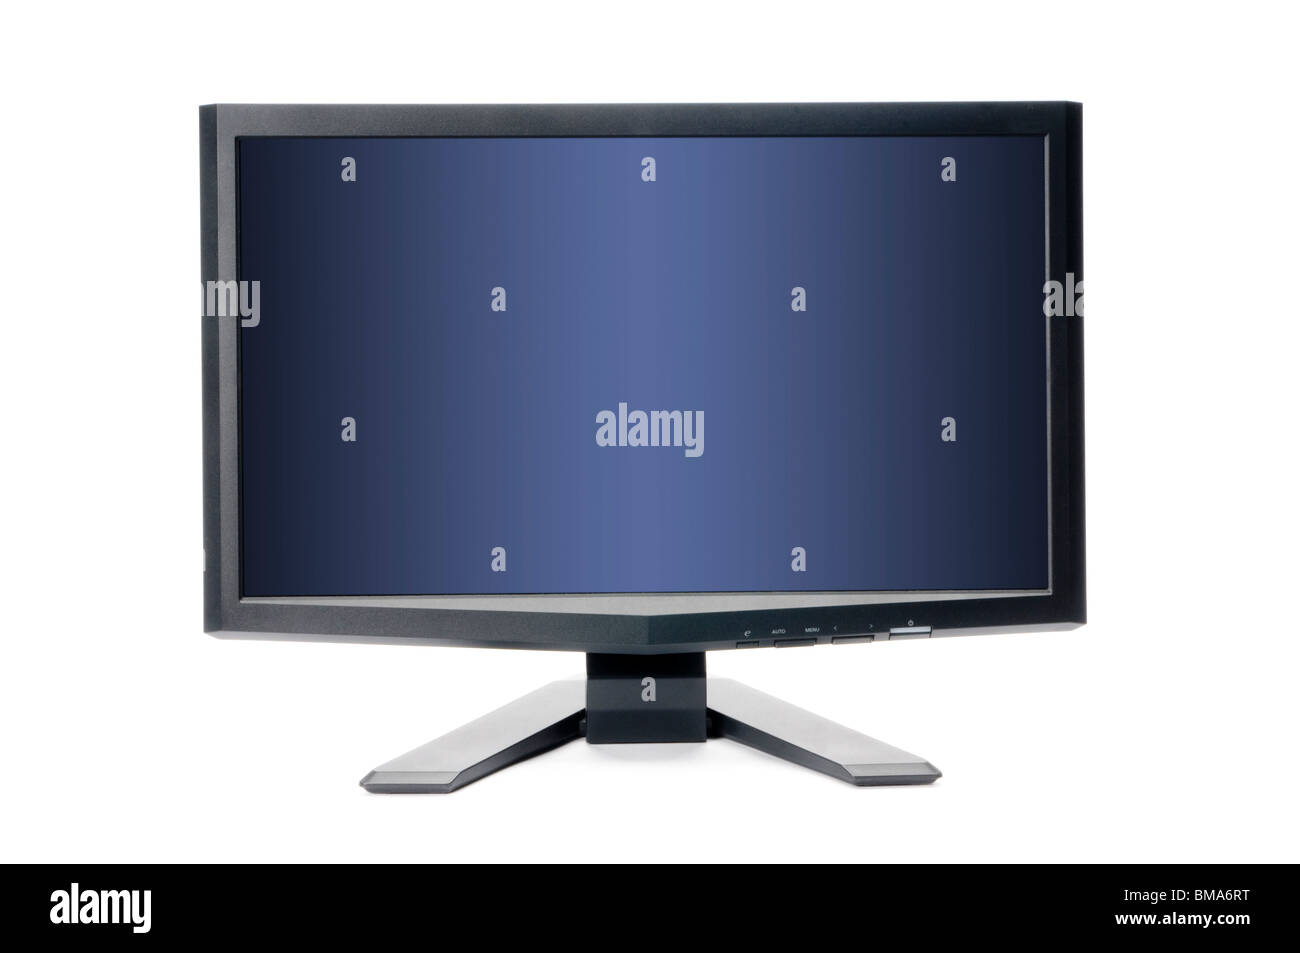 blank high definition computer monitor - Stock Image